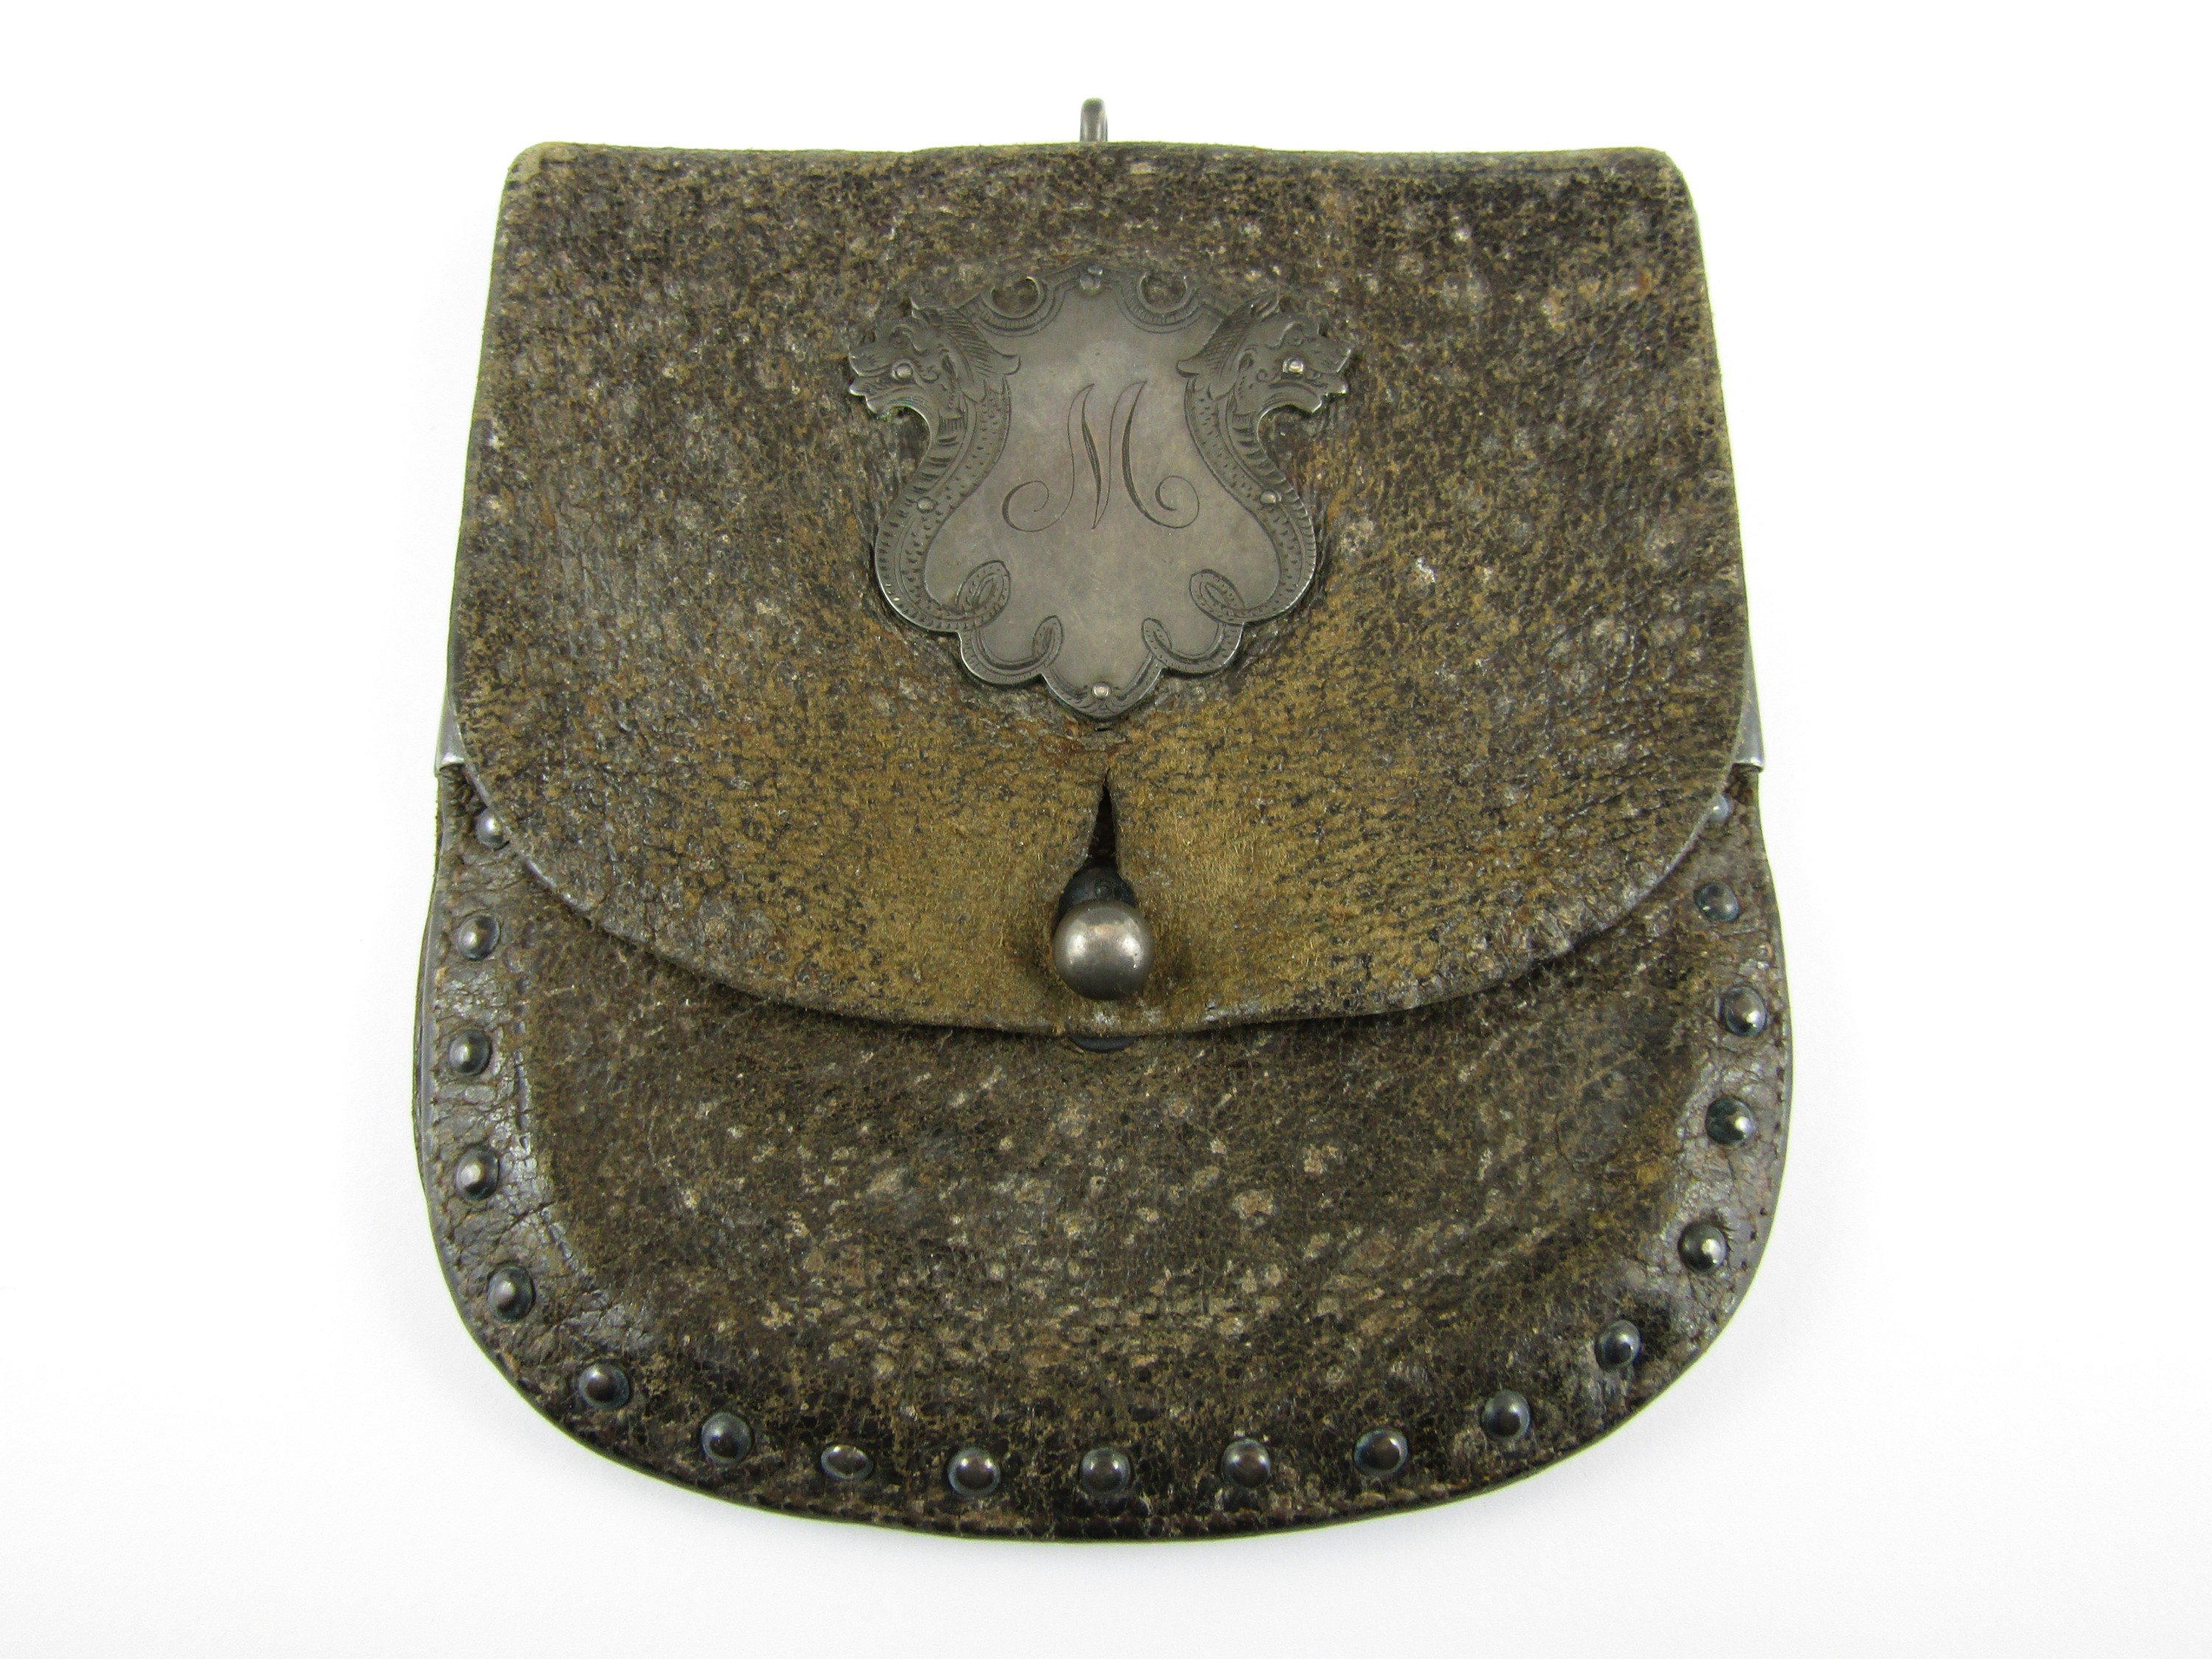 Lot 2 - A late 18th / early 19th Century white metal mounted leather purse, 11 cm x 11 cm